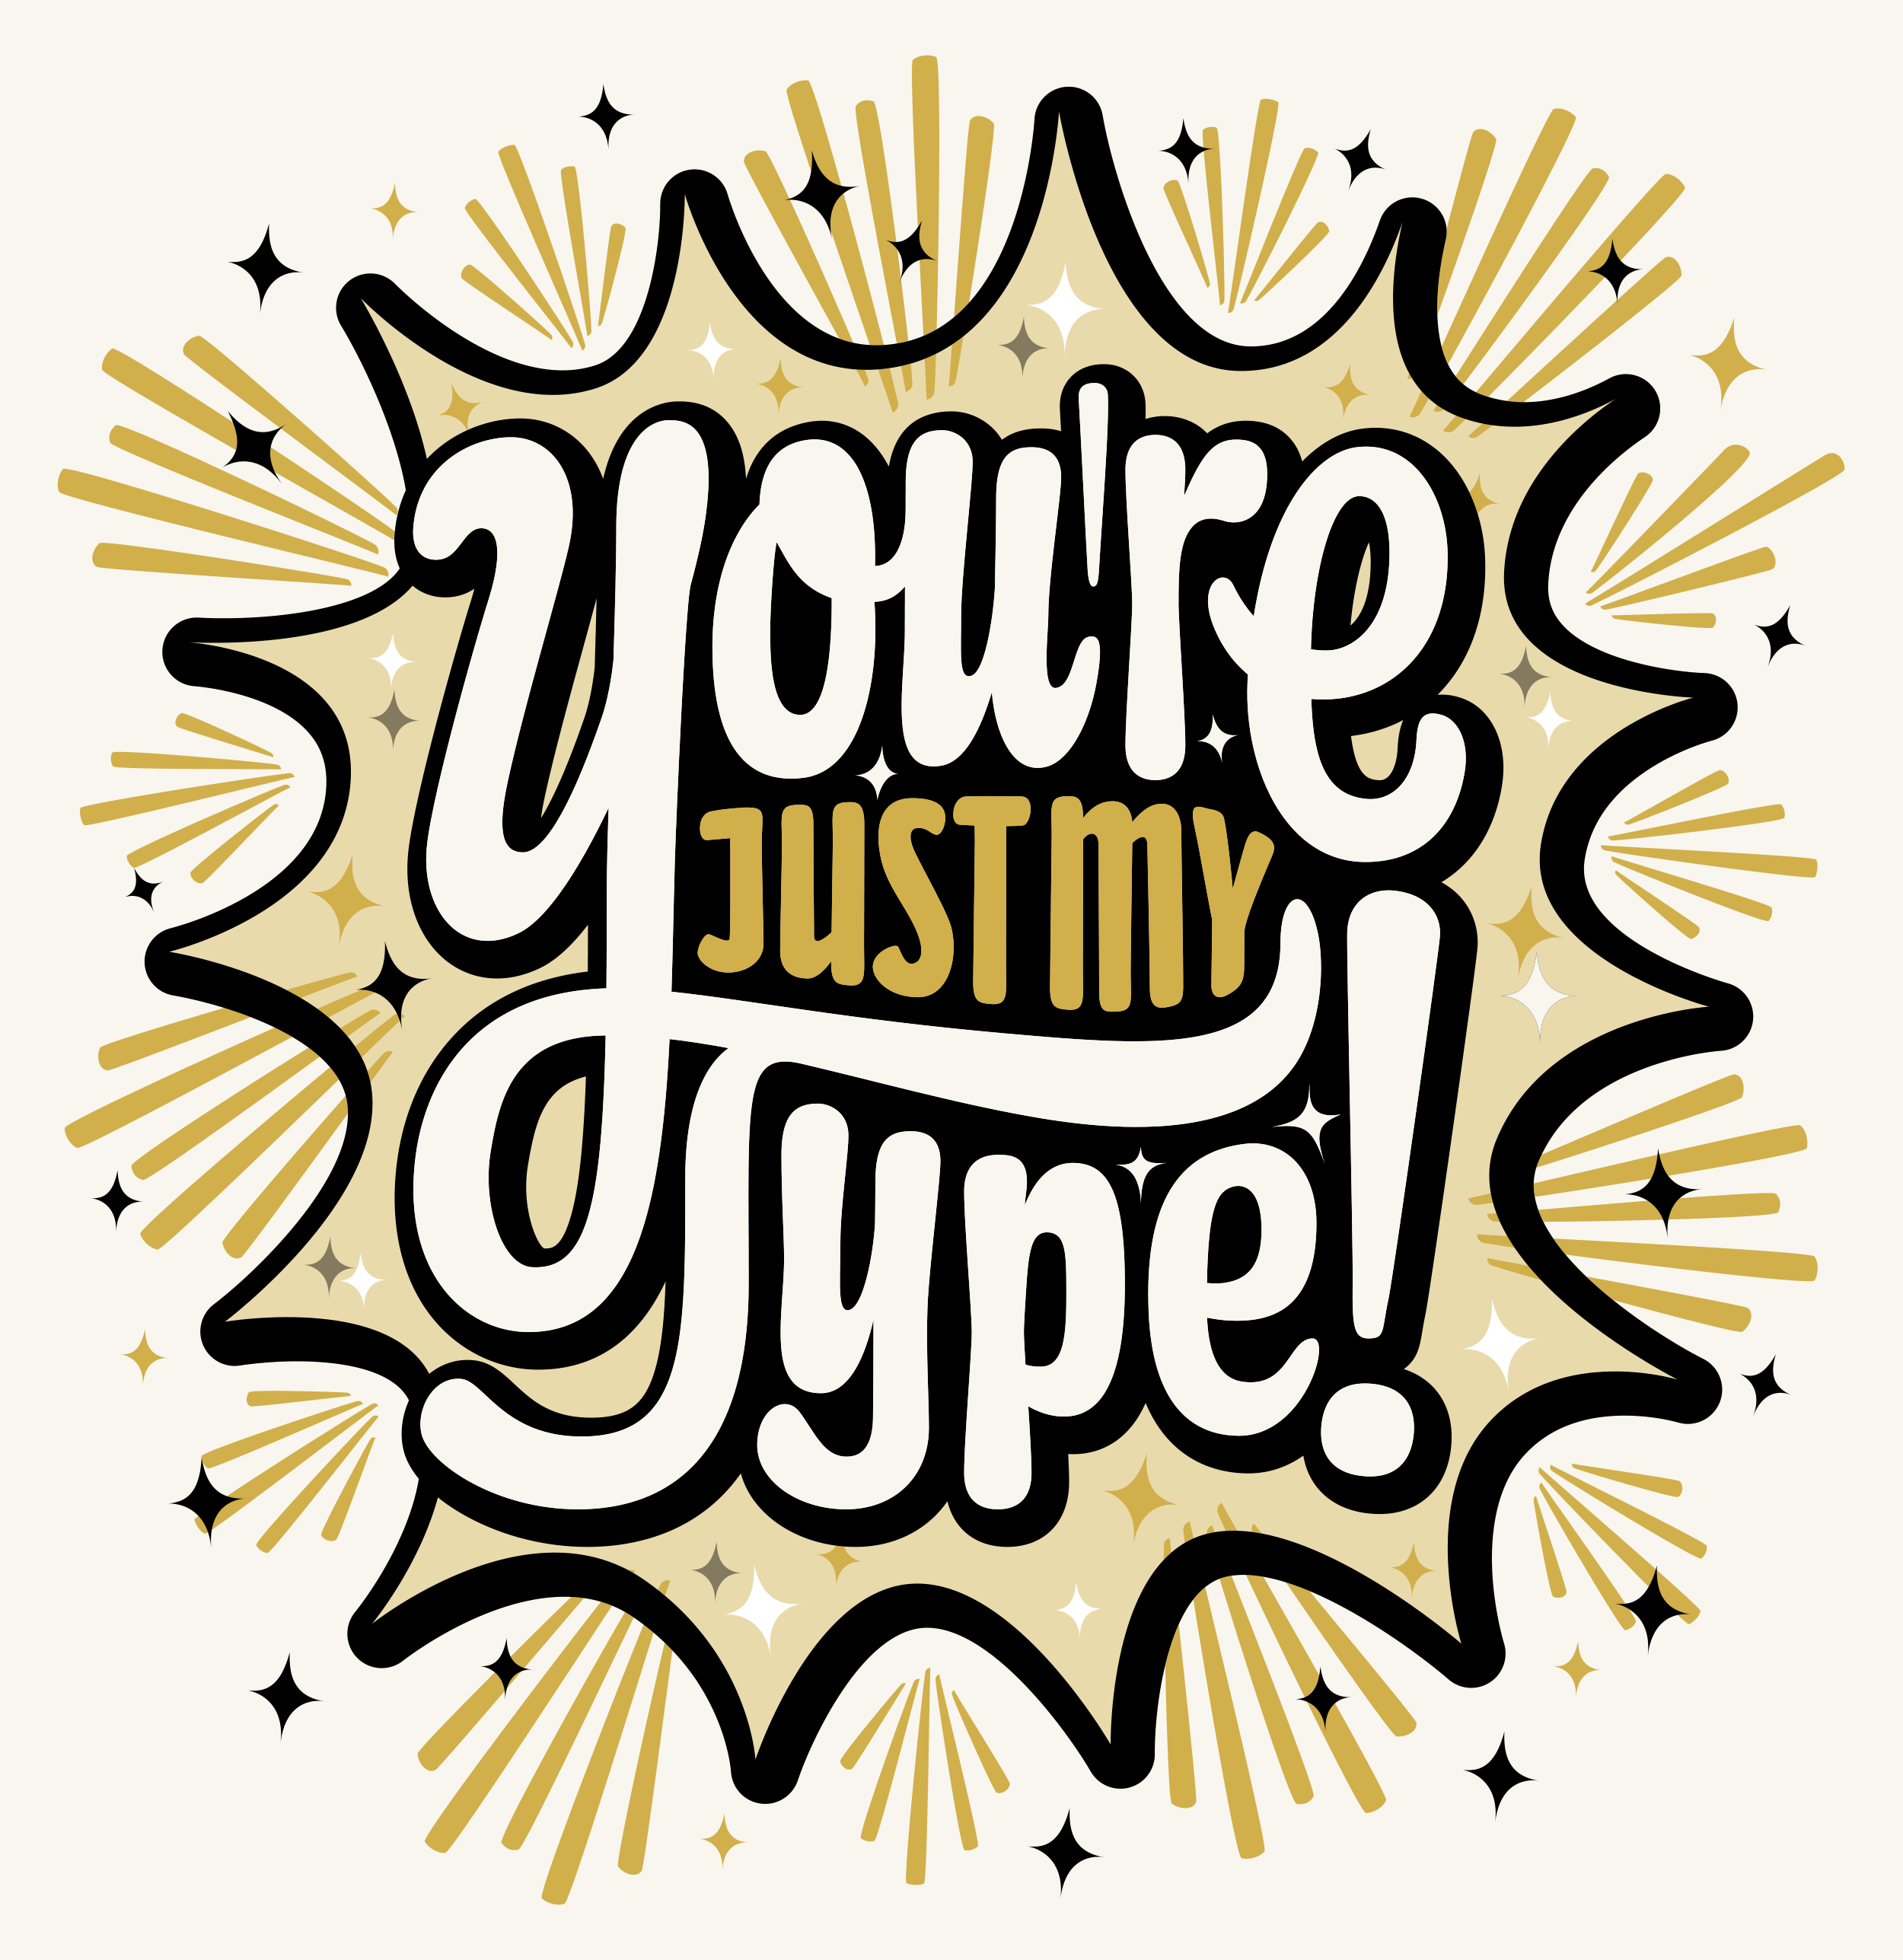 YoureJustMyType.png